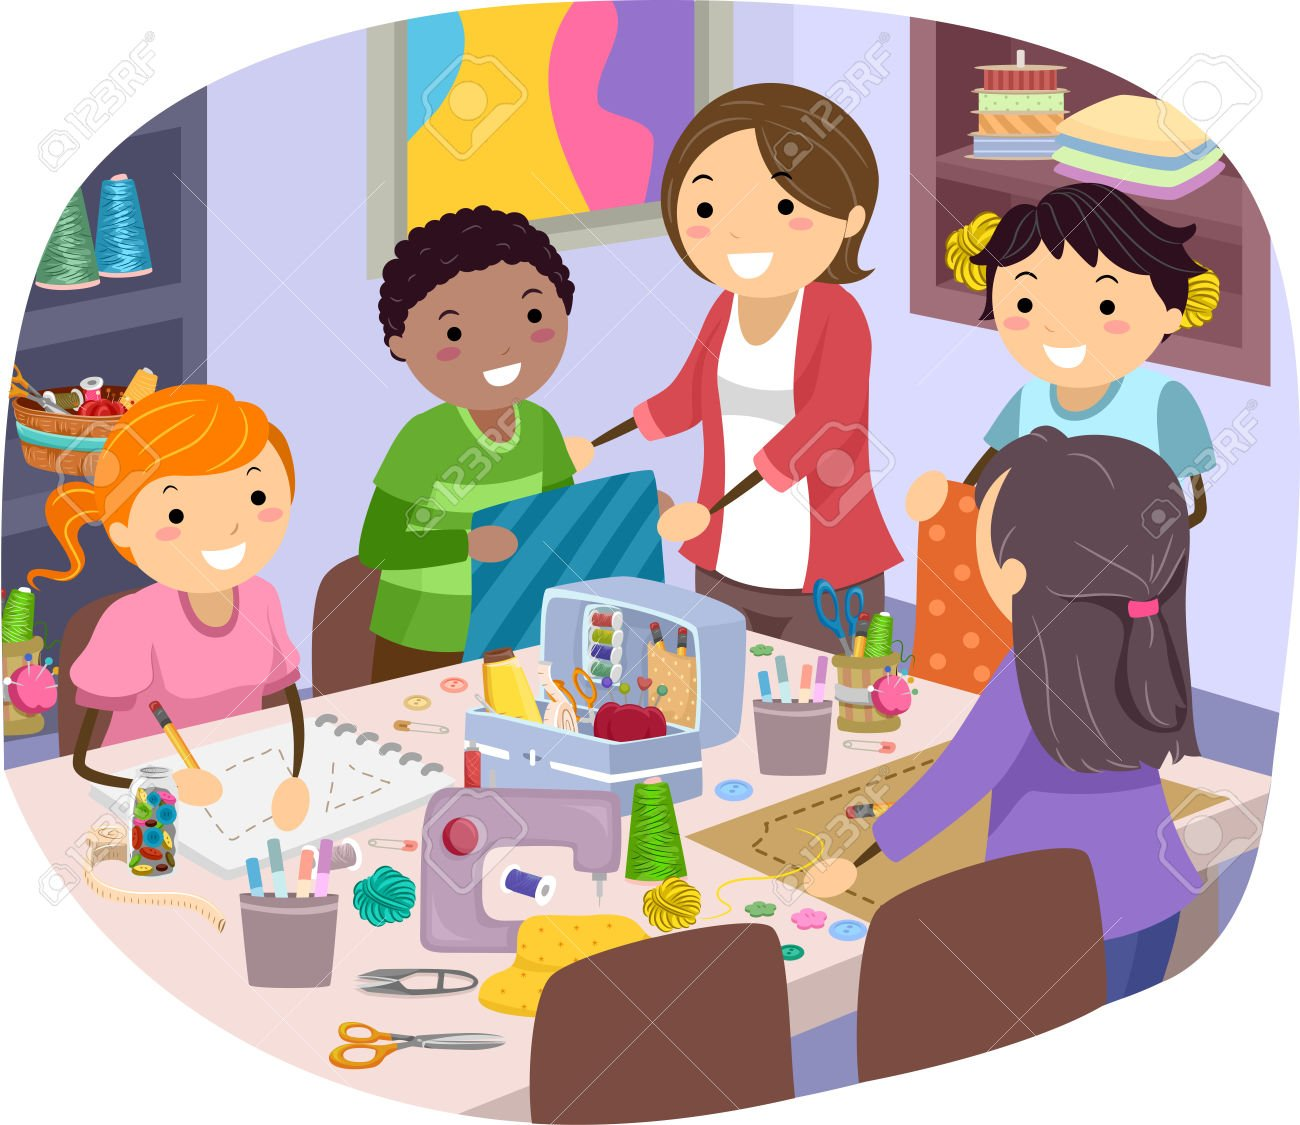 Image result for cartoon children sewing